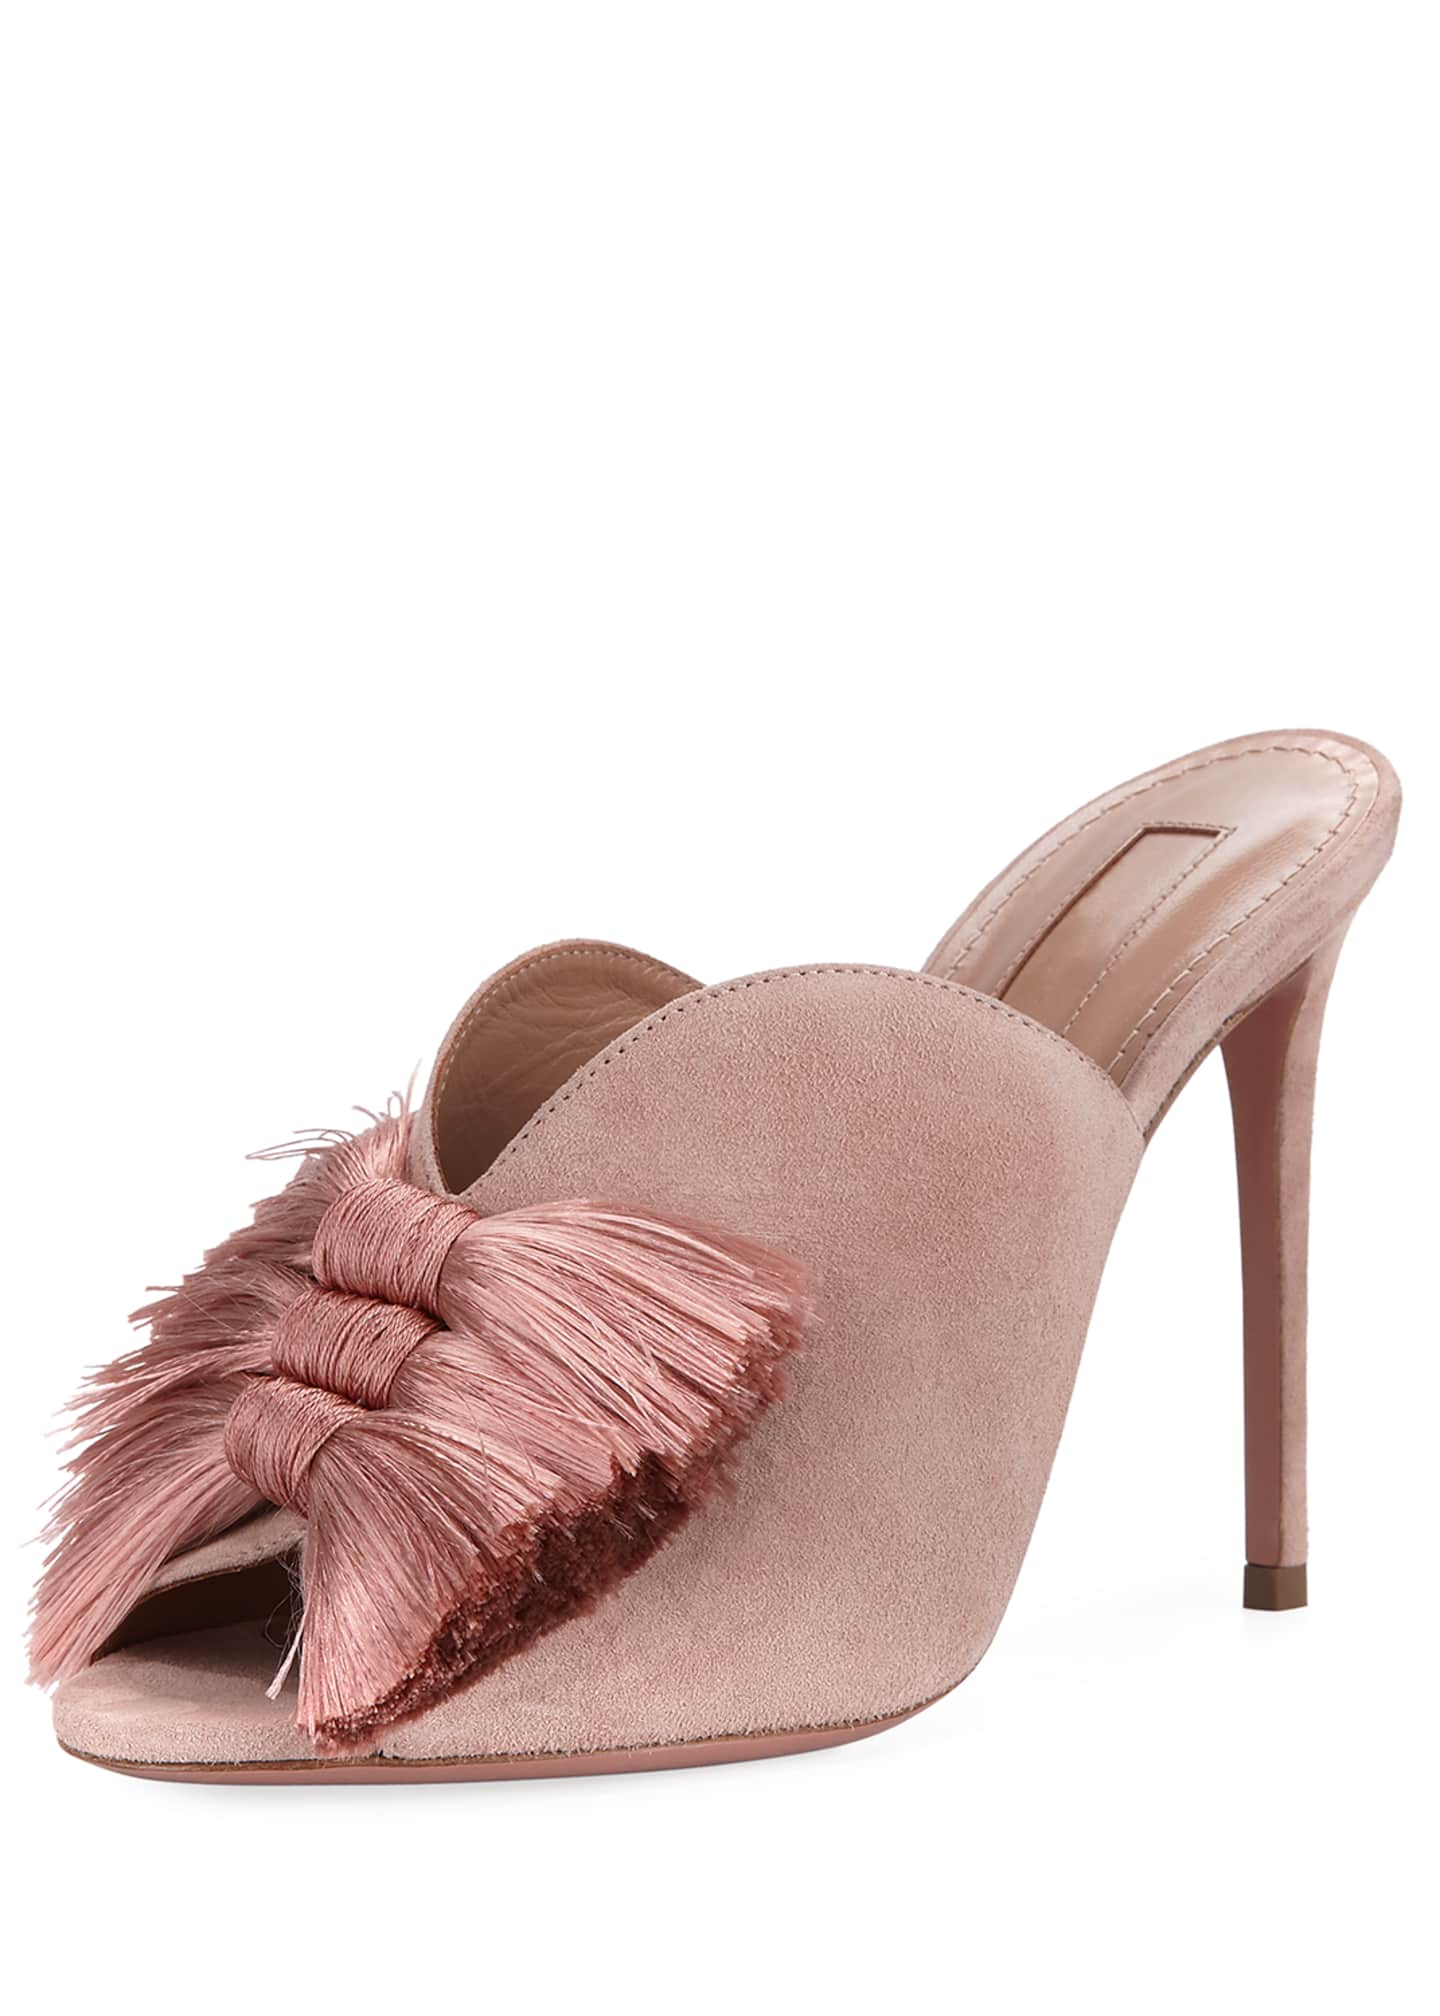 Aquazzura Lotus Blossom Tassel-Trim Mule Sandals